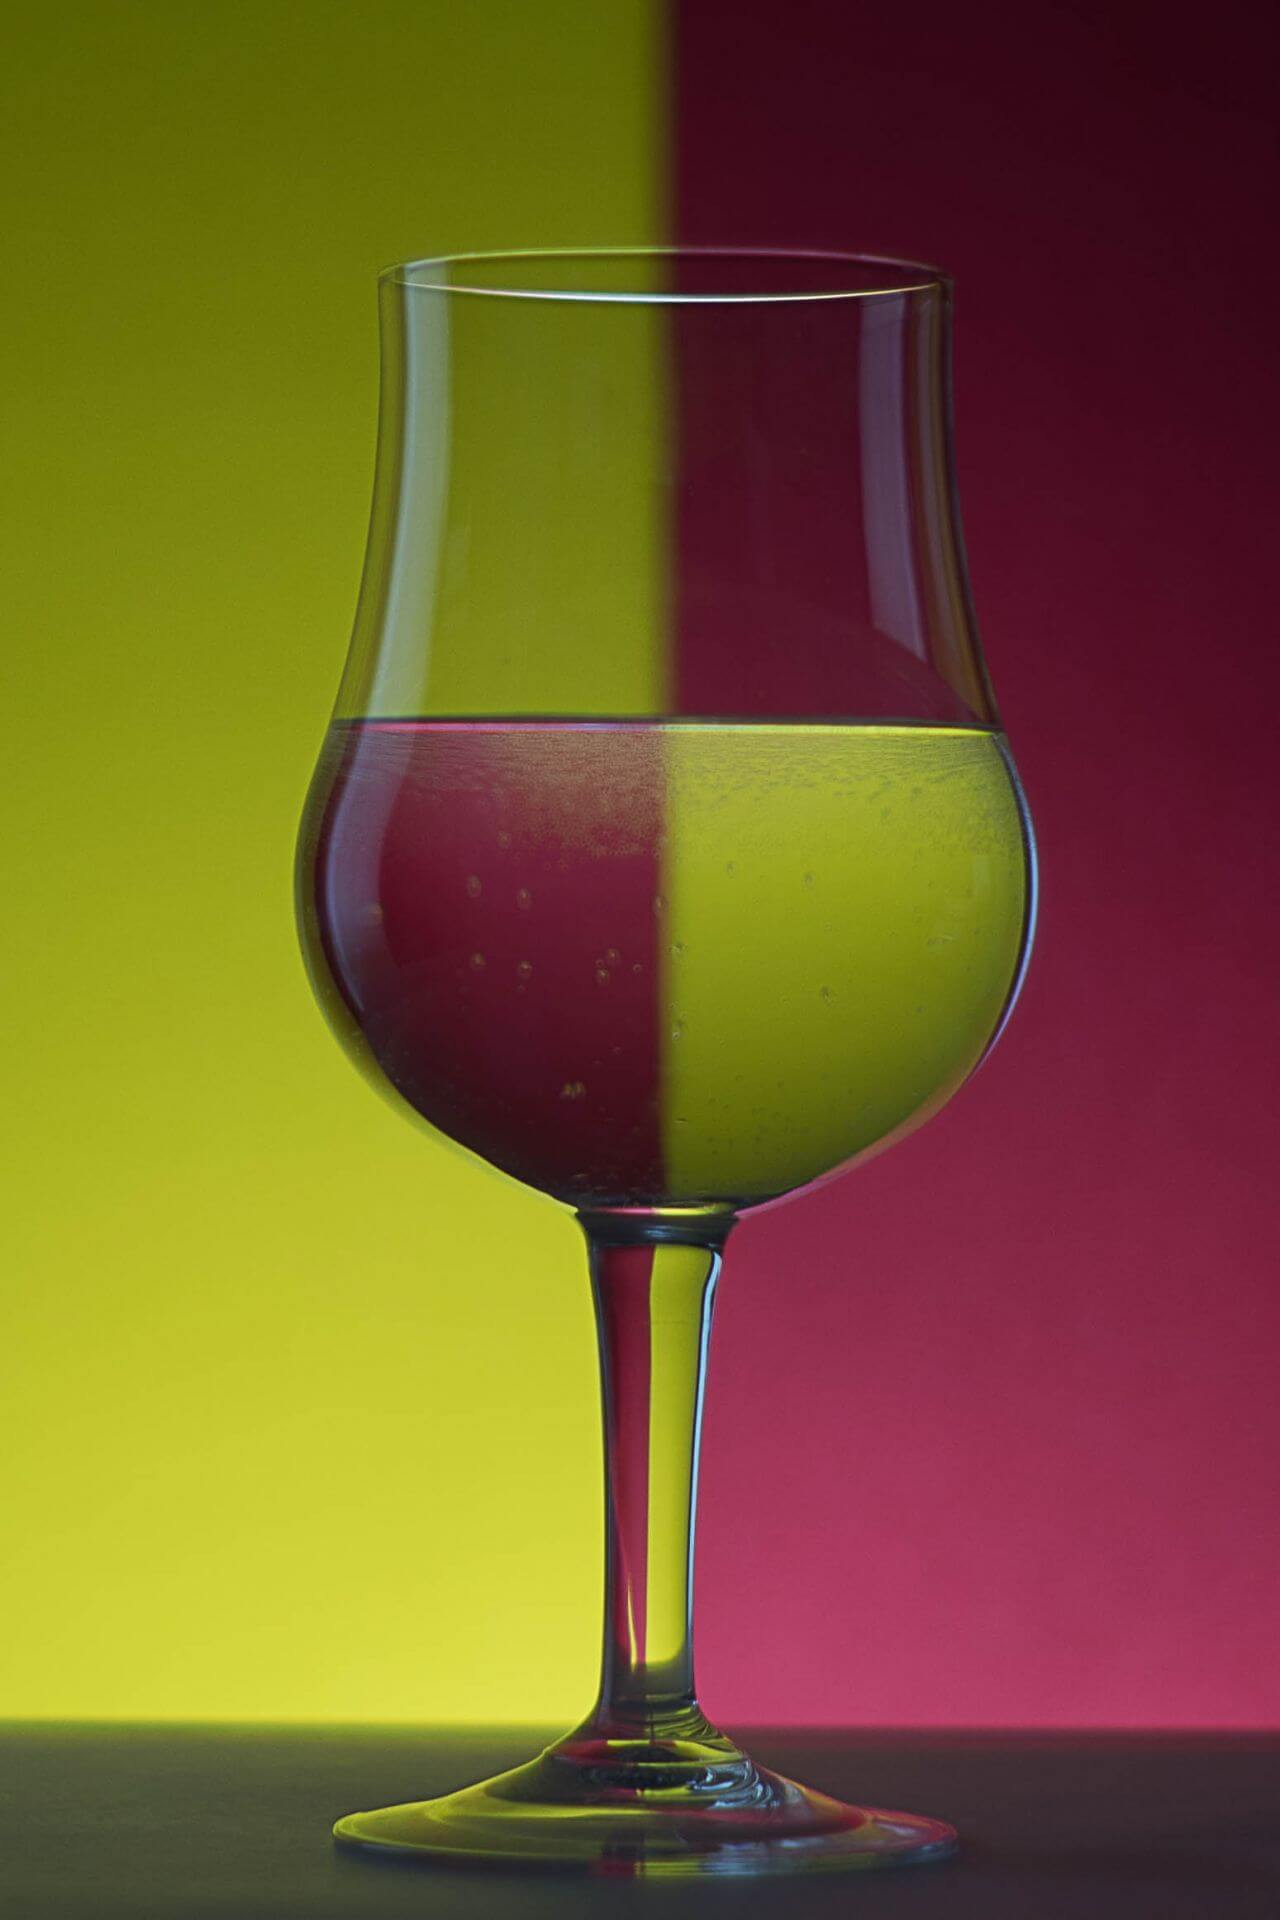 """Free photo """"Beer Glass Against Colored Background"""" by Jonas Zürcher"""